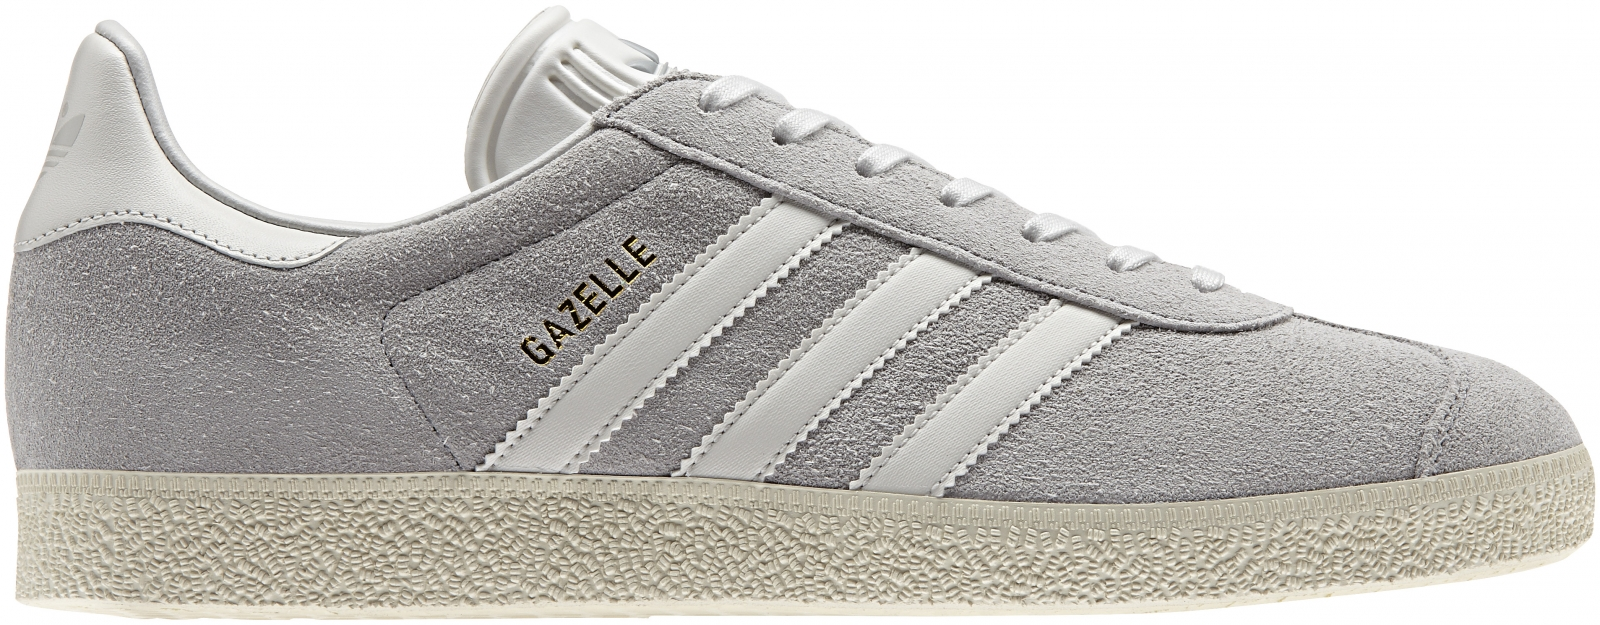 Adidas Gazelle Olive Cargo Gum His trainers Office